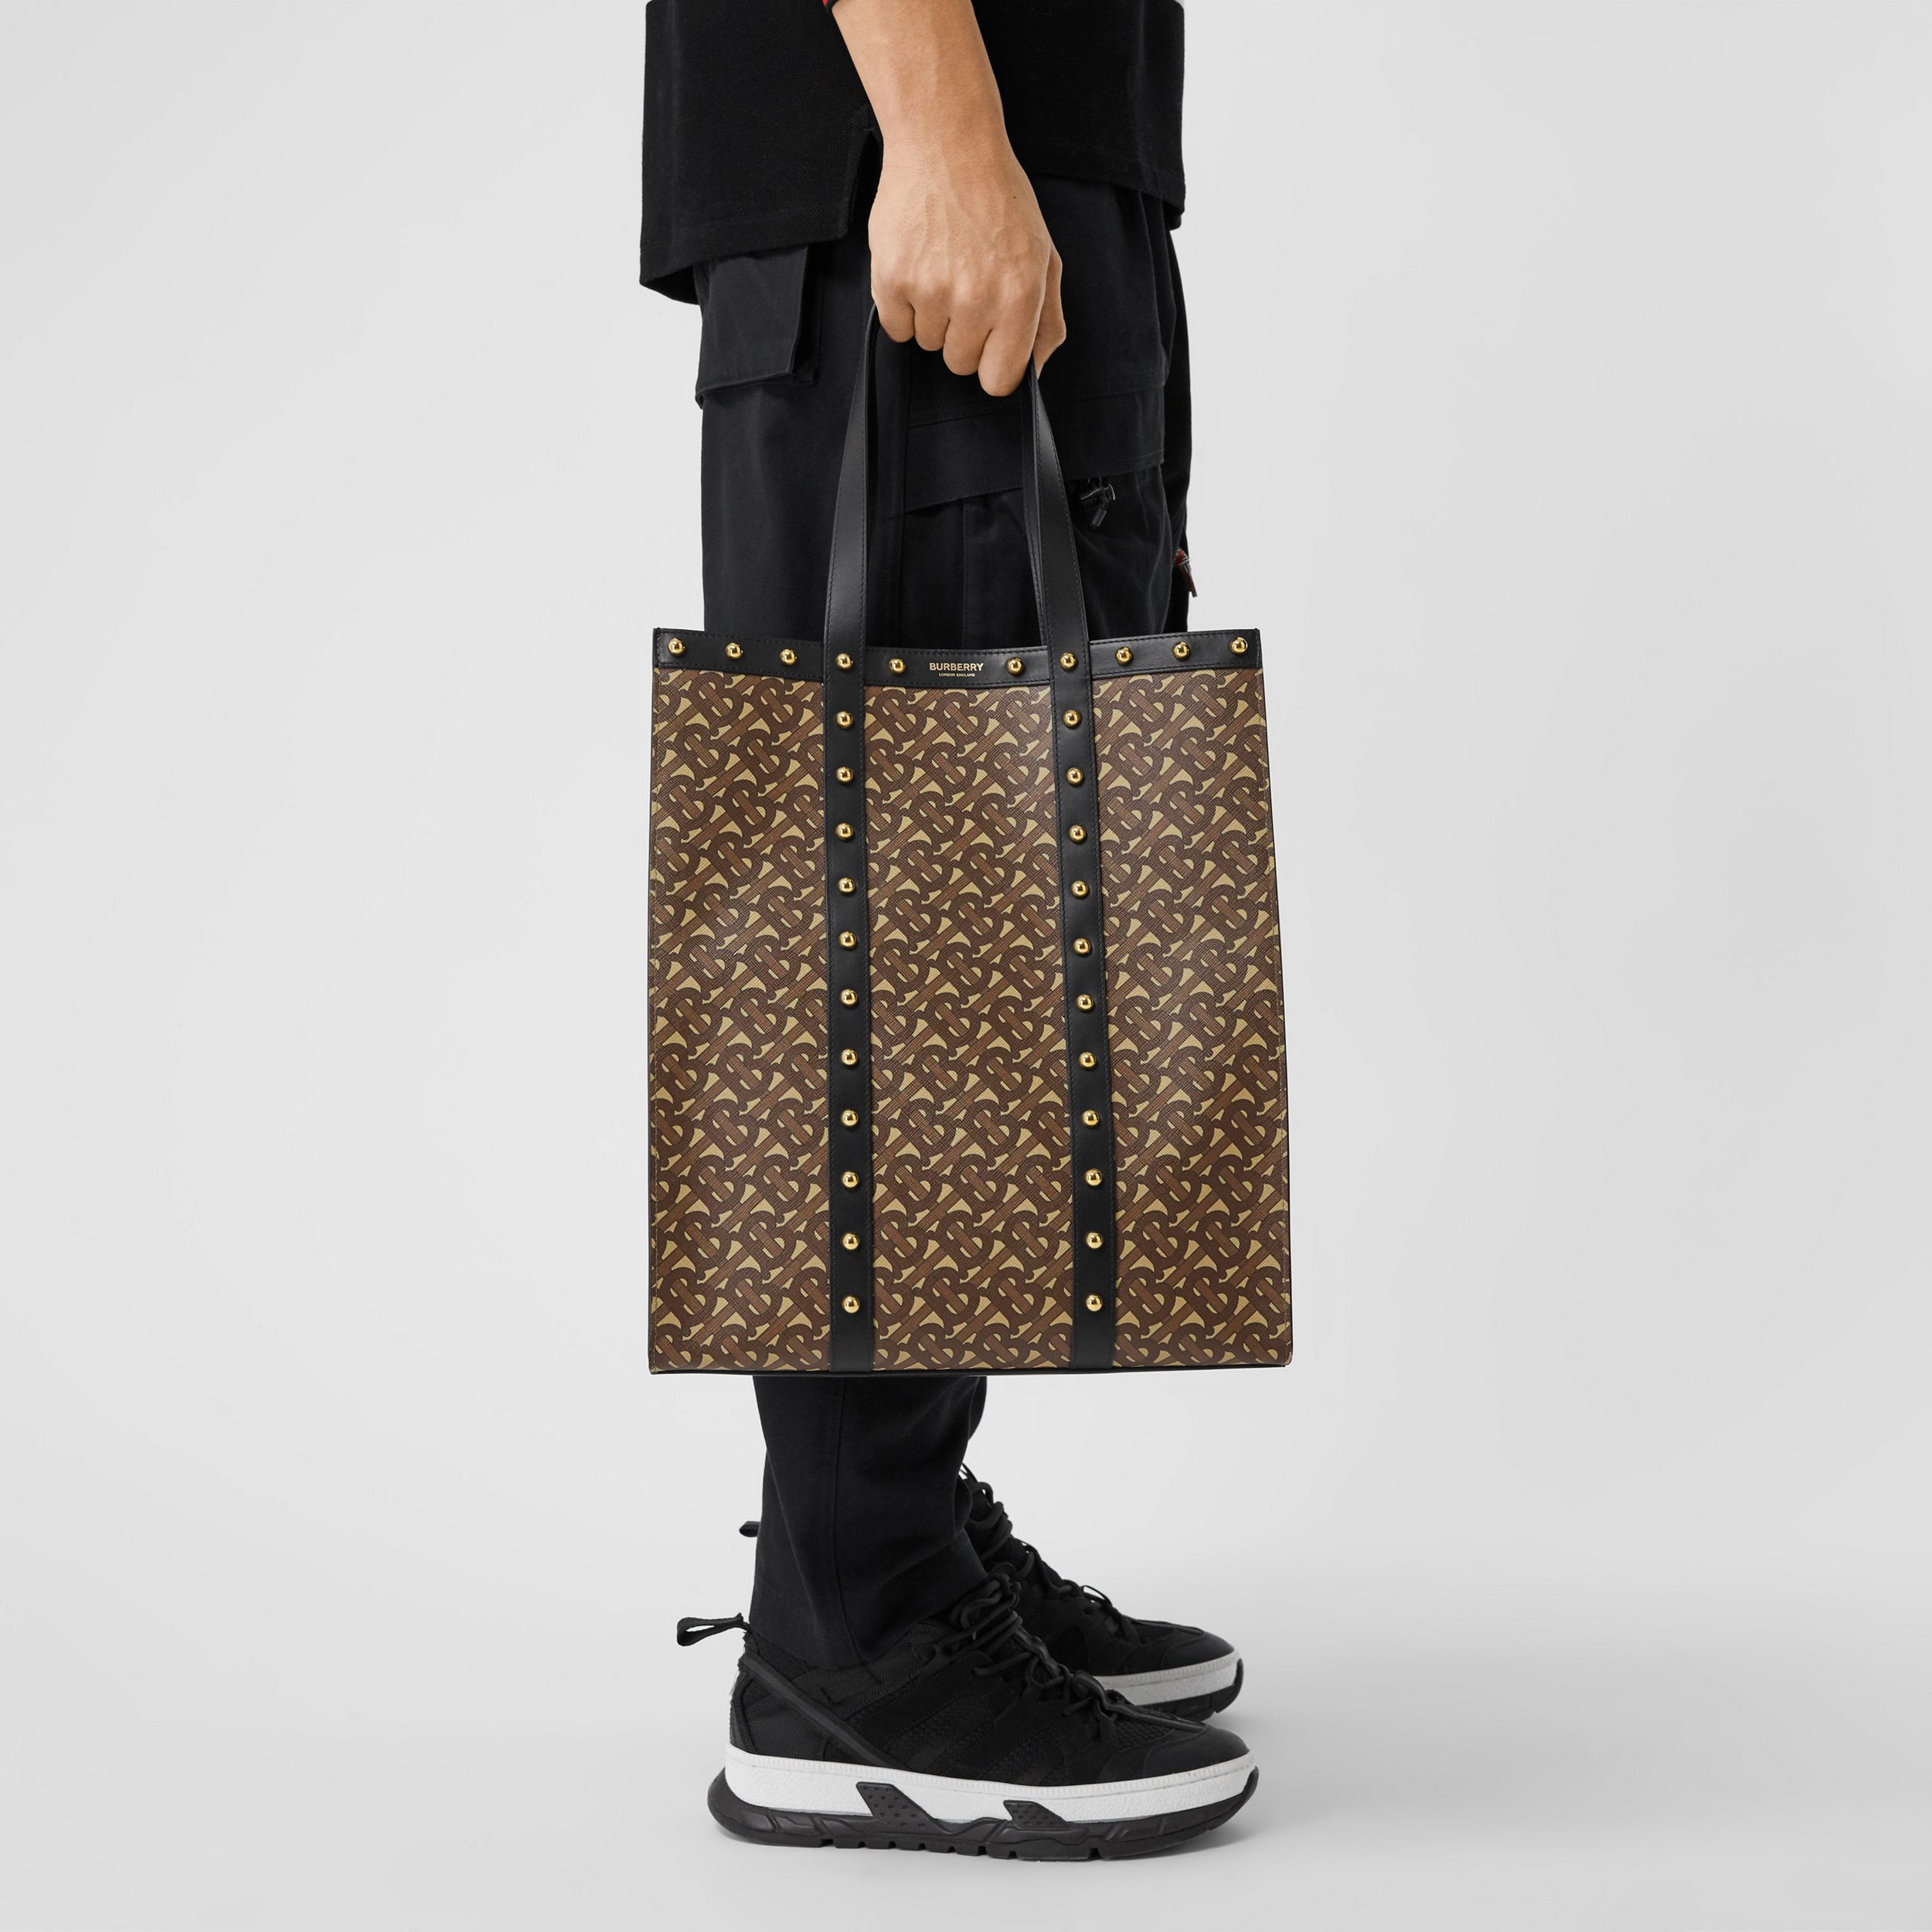 Monogram Print E-canvas Portrait Tote Bag in Black | Burberry - 4